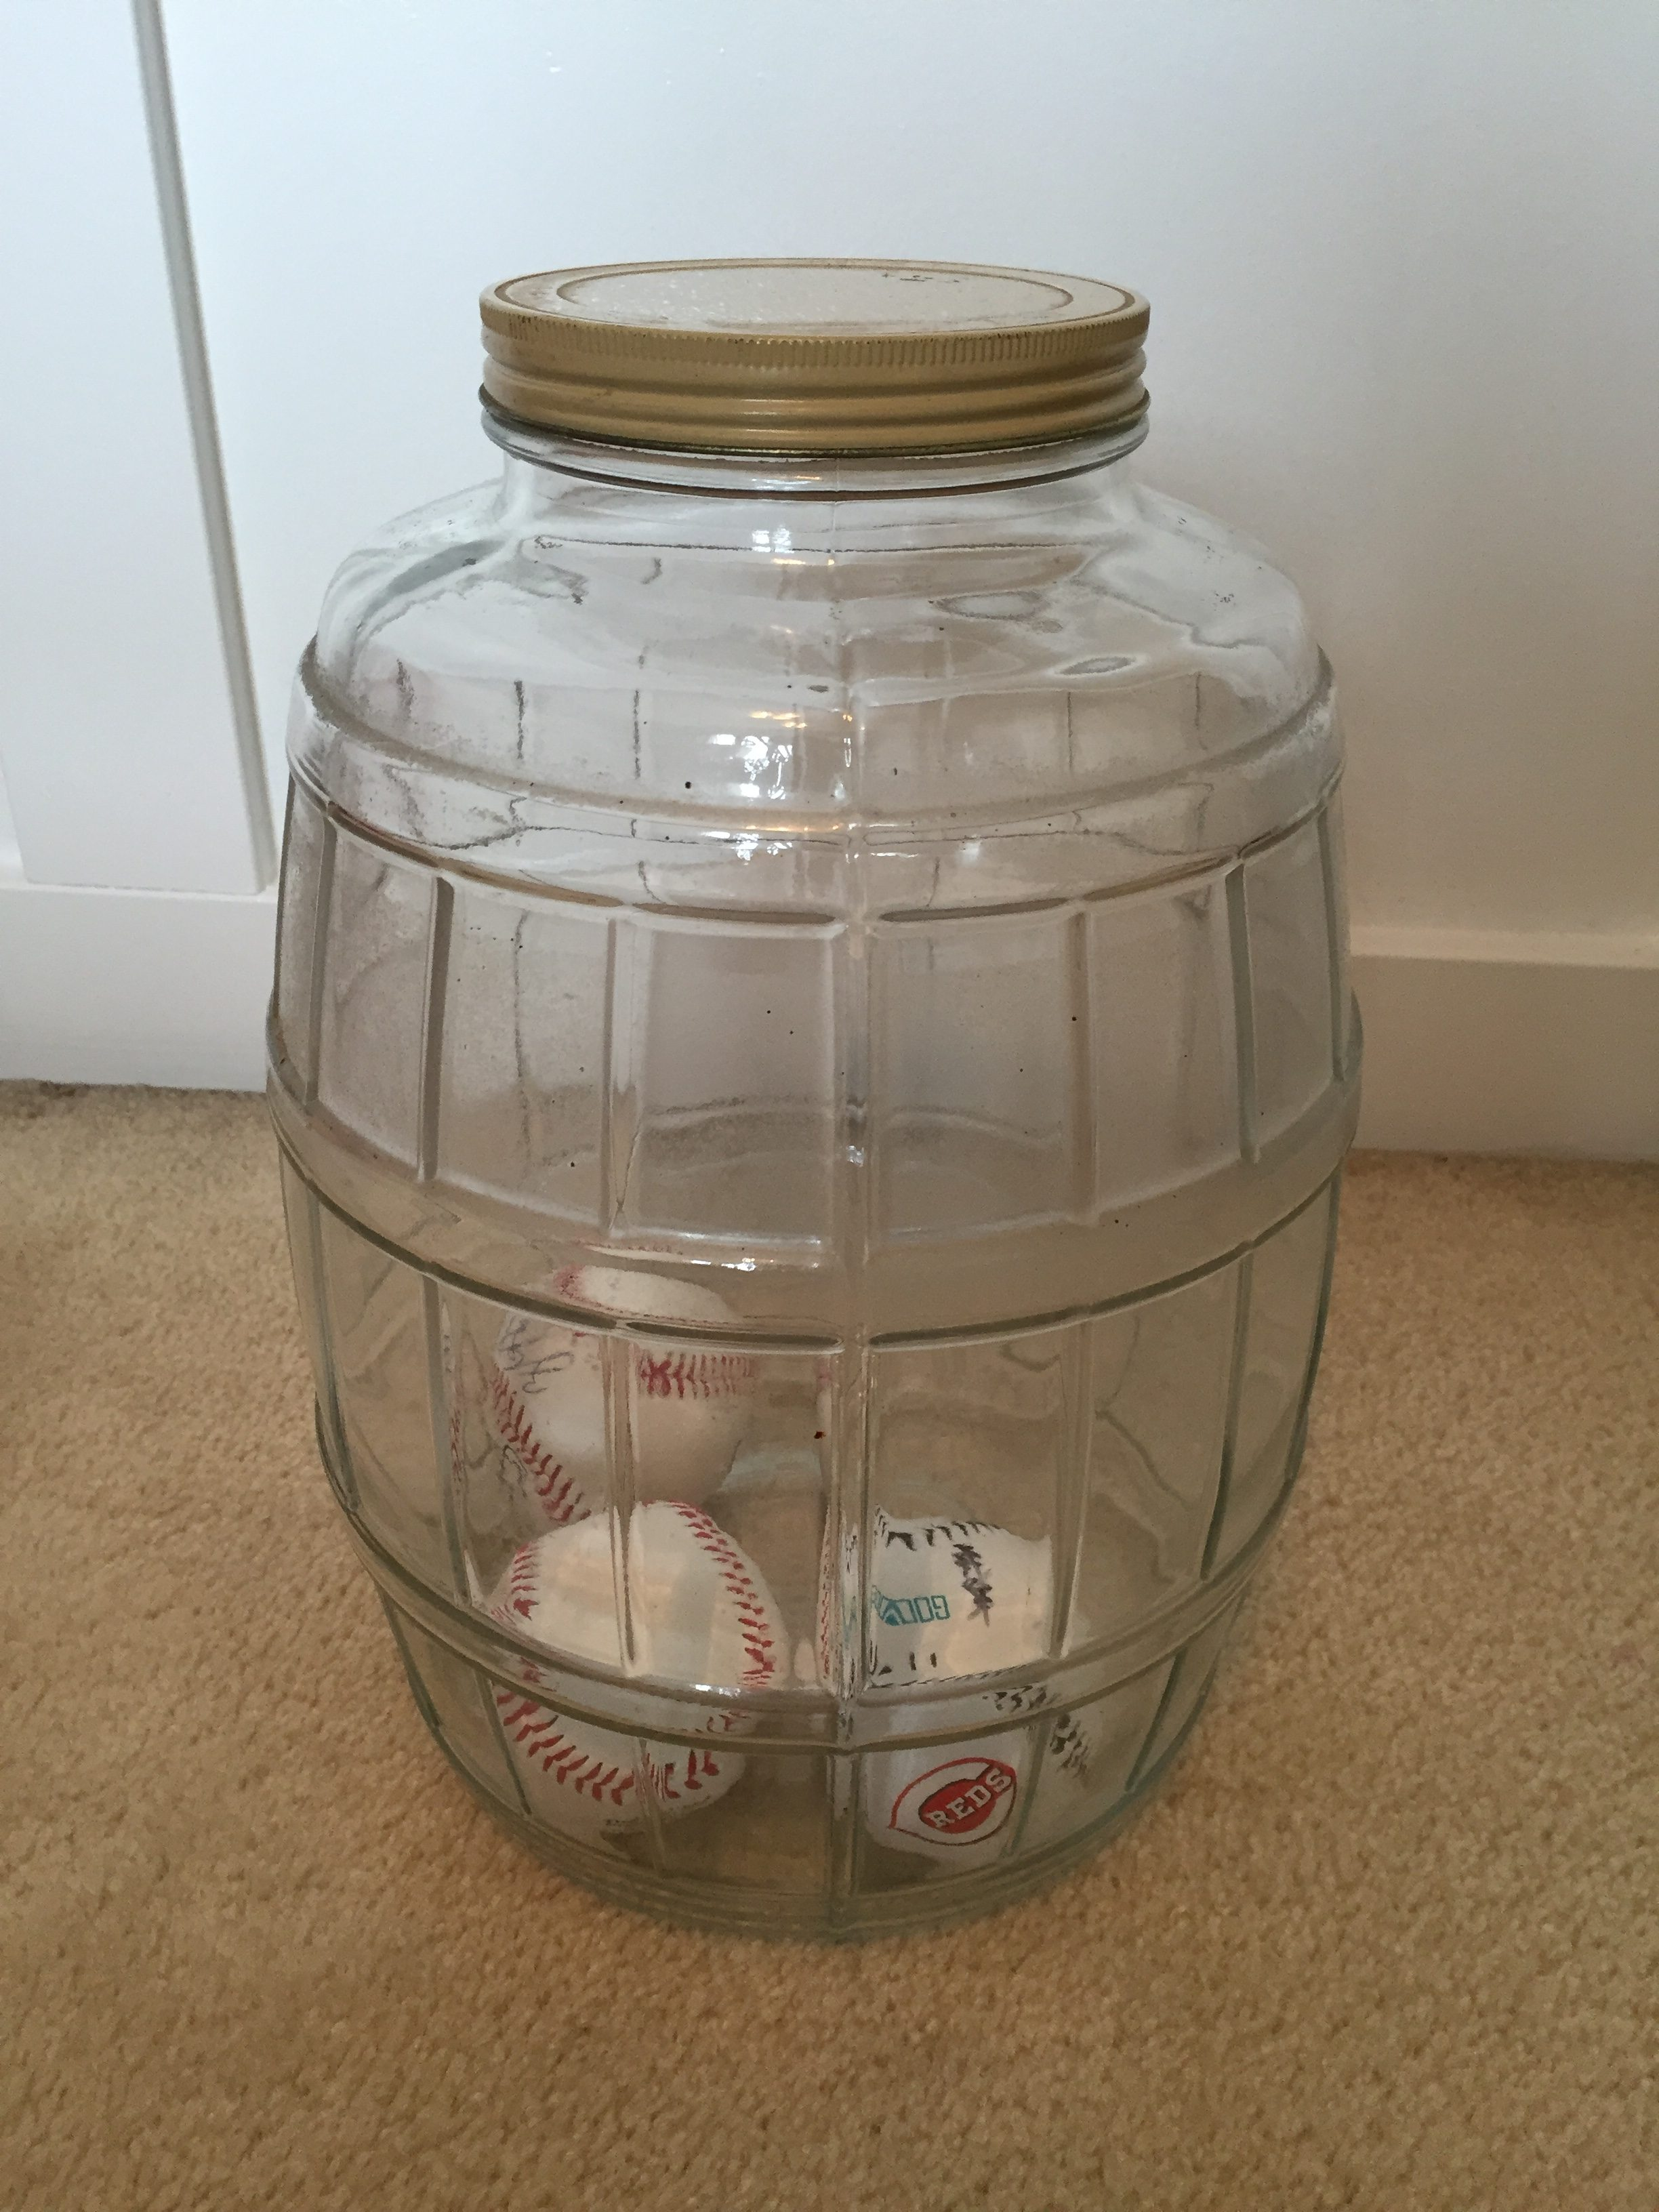 Large Antique Jar for housing Baseballs by www.whitecottagehomeandliving.com